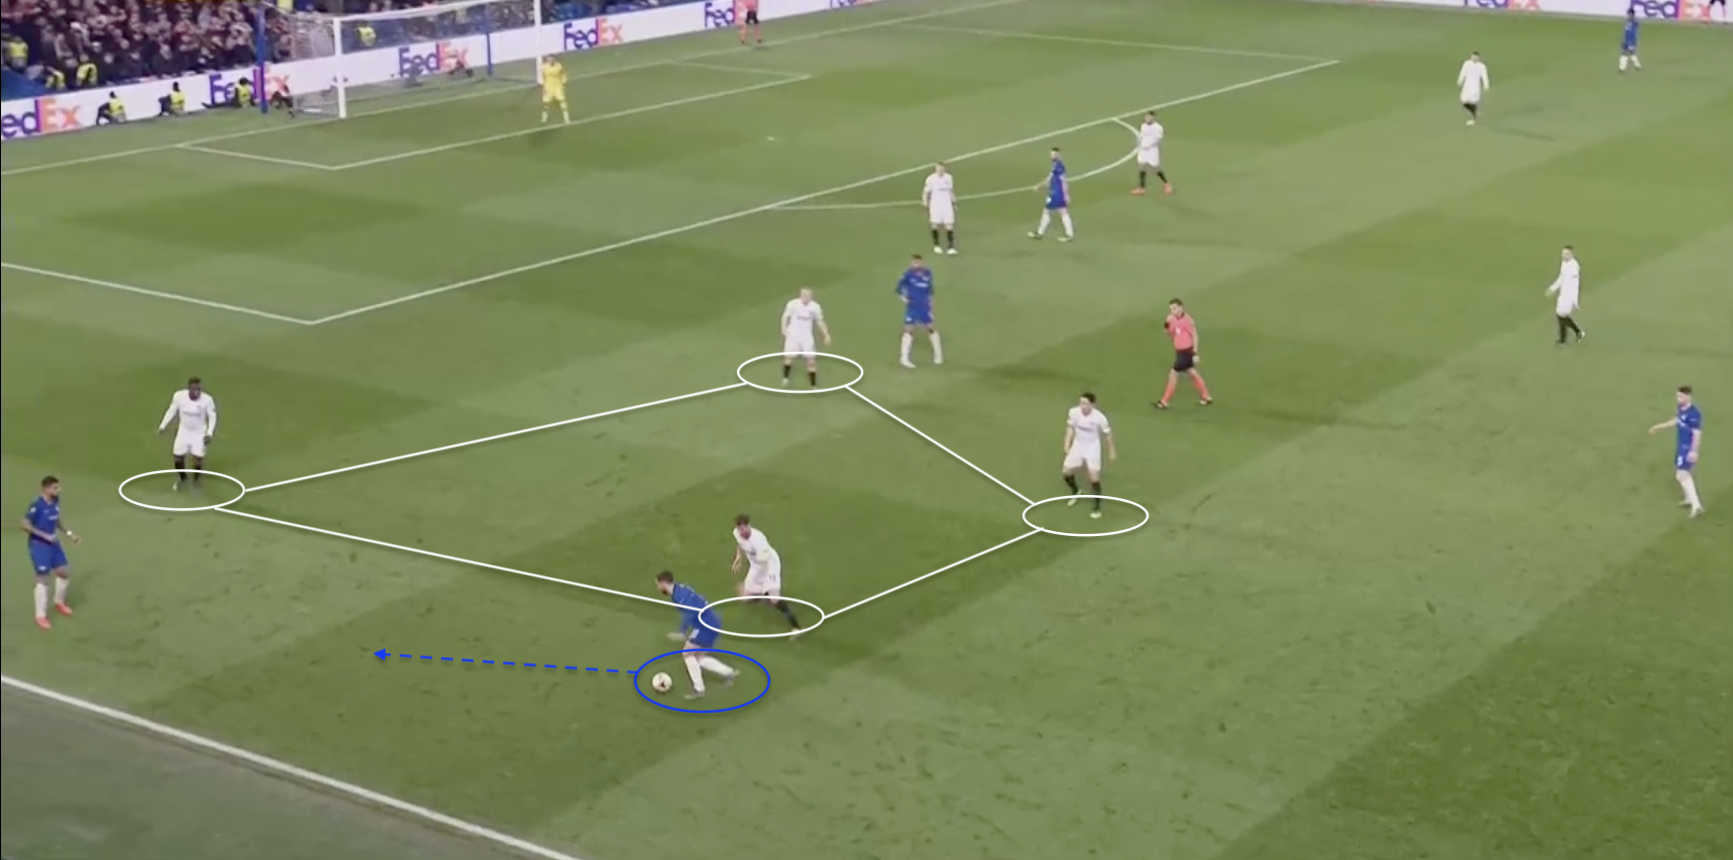 Chelsea 2019/20: Season preview - scout report - tactical analysis tactics